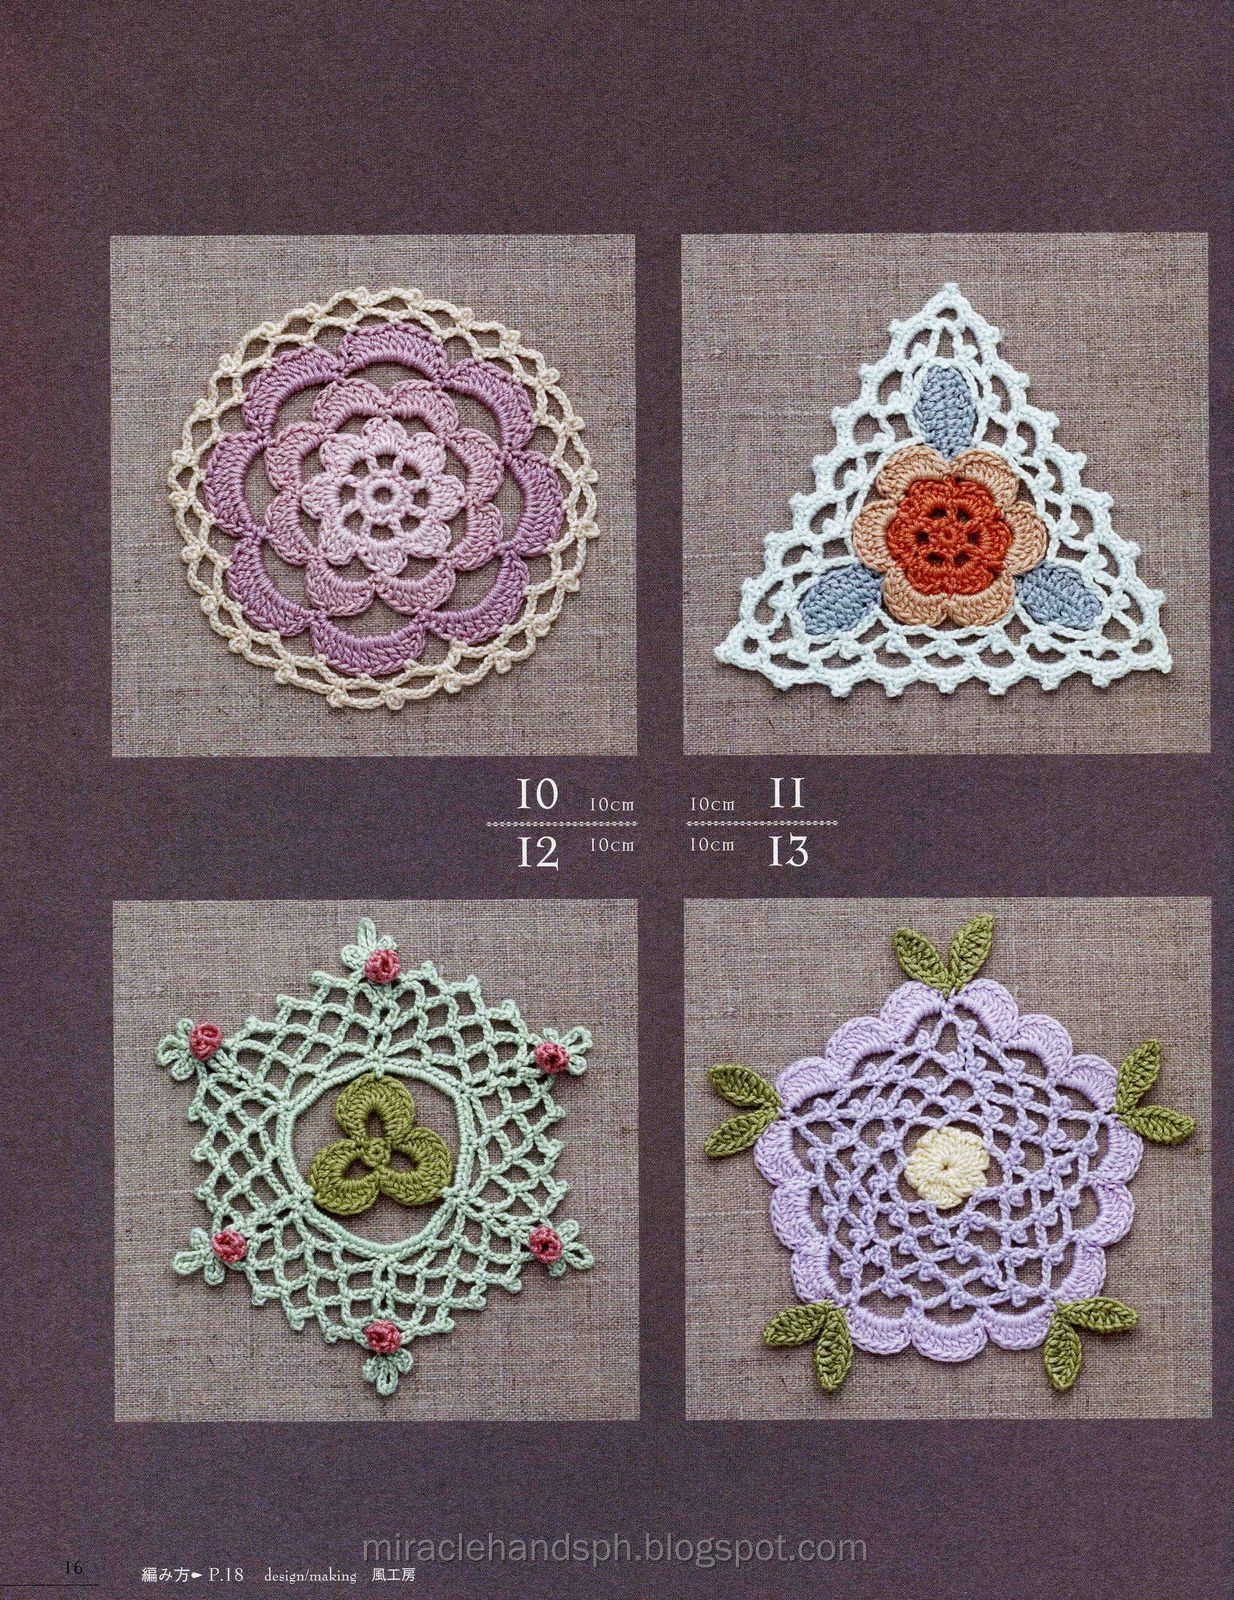 Crochet Patterns Japanese Free : Free japanese craft book: Crochet Rose Pattern 100 ~ Miracle hands